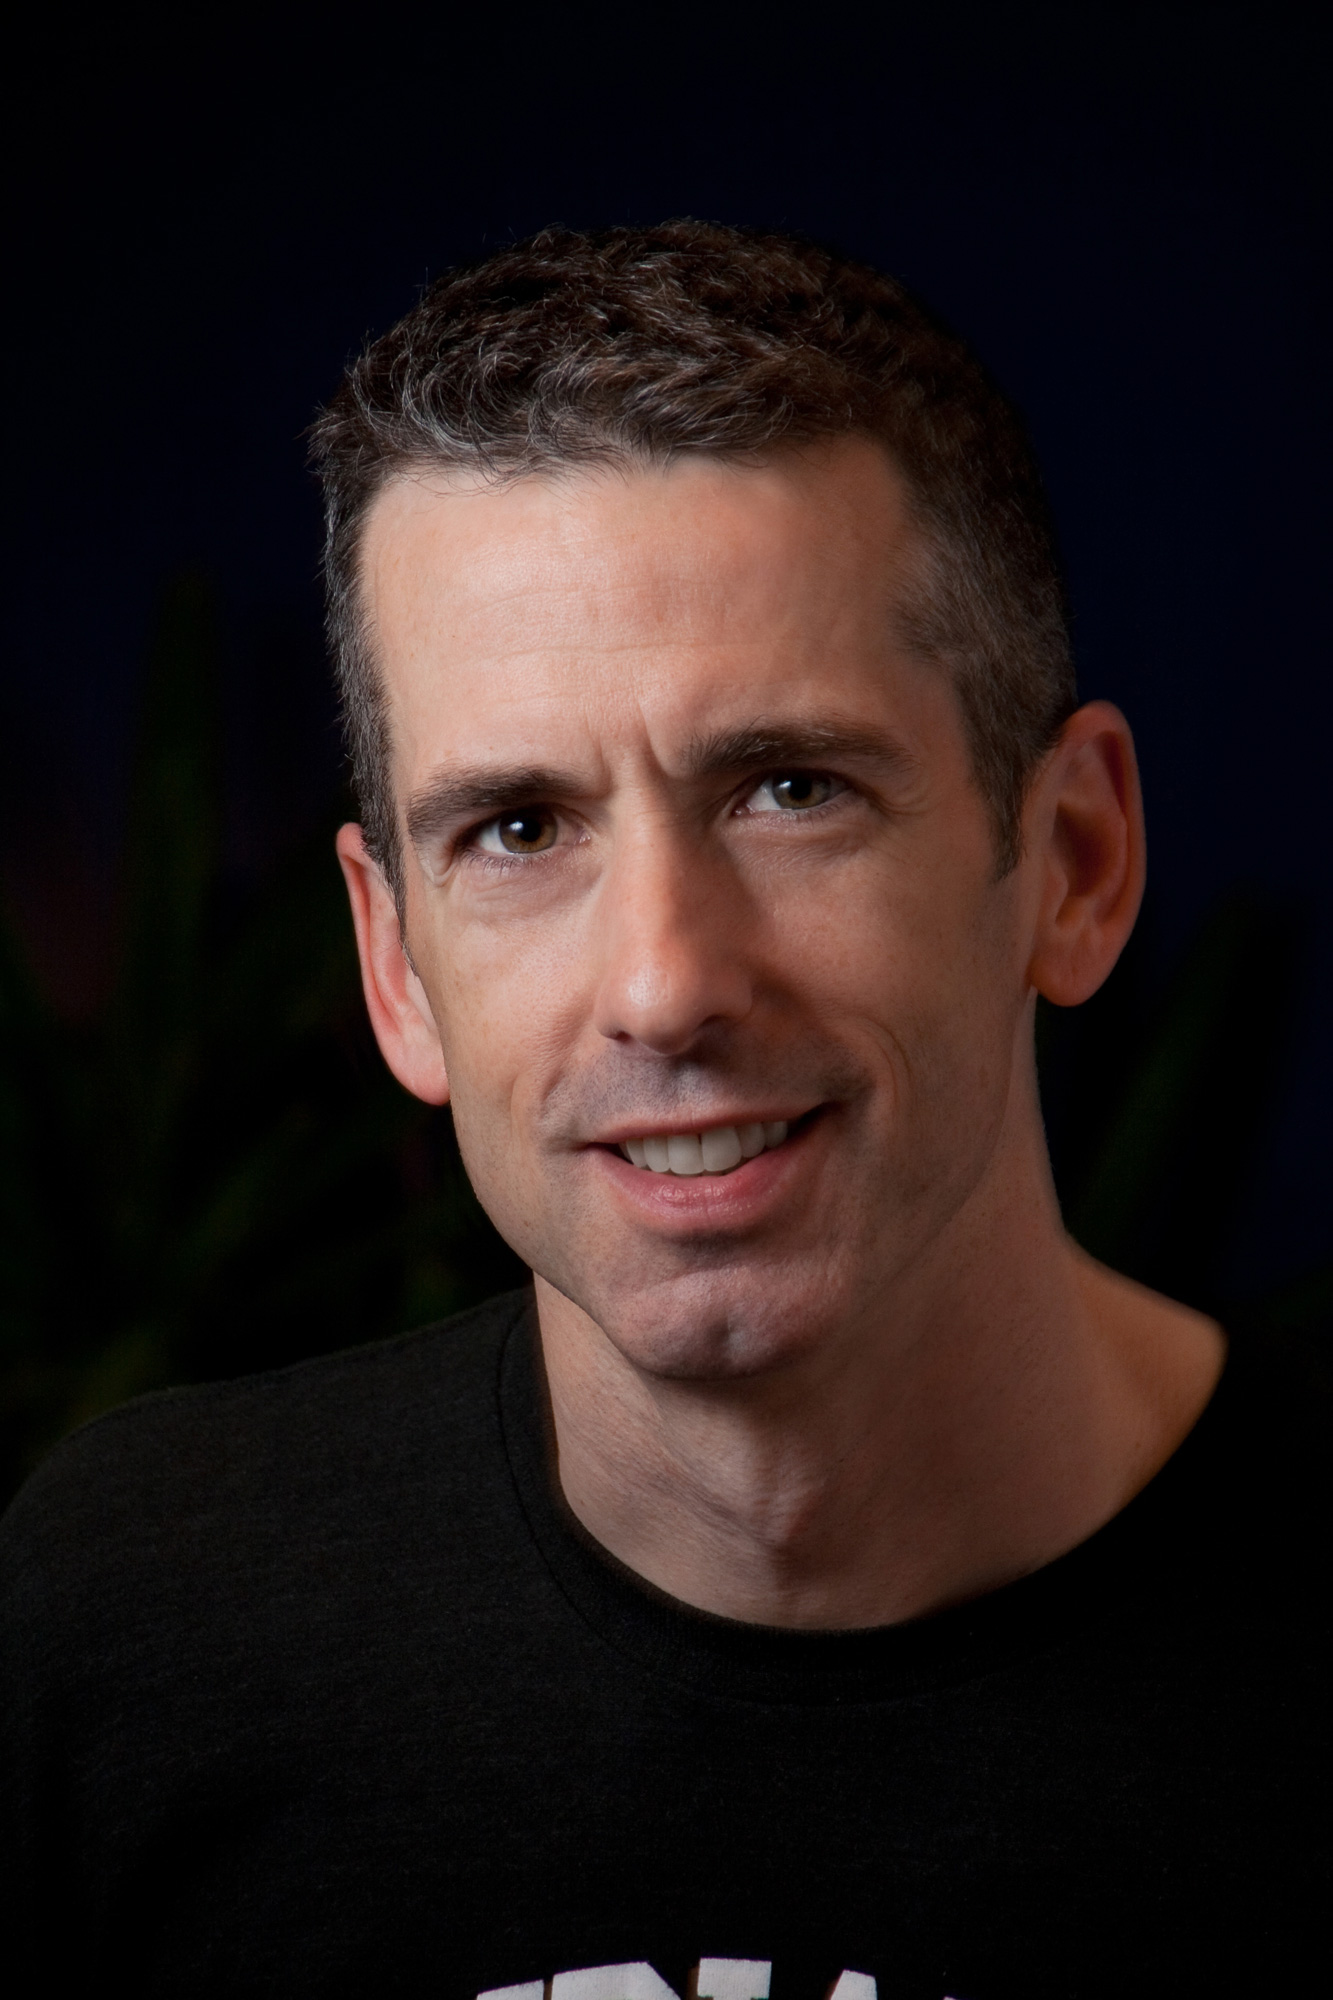 Dan Savage on sex at Texas Tech